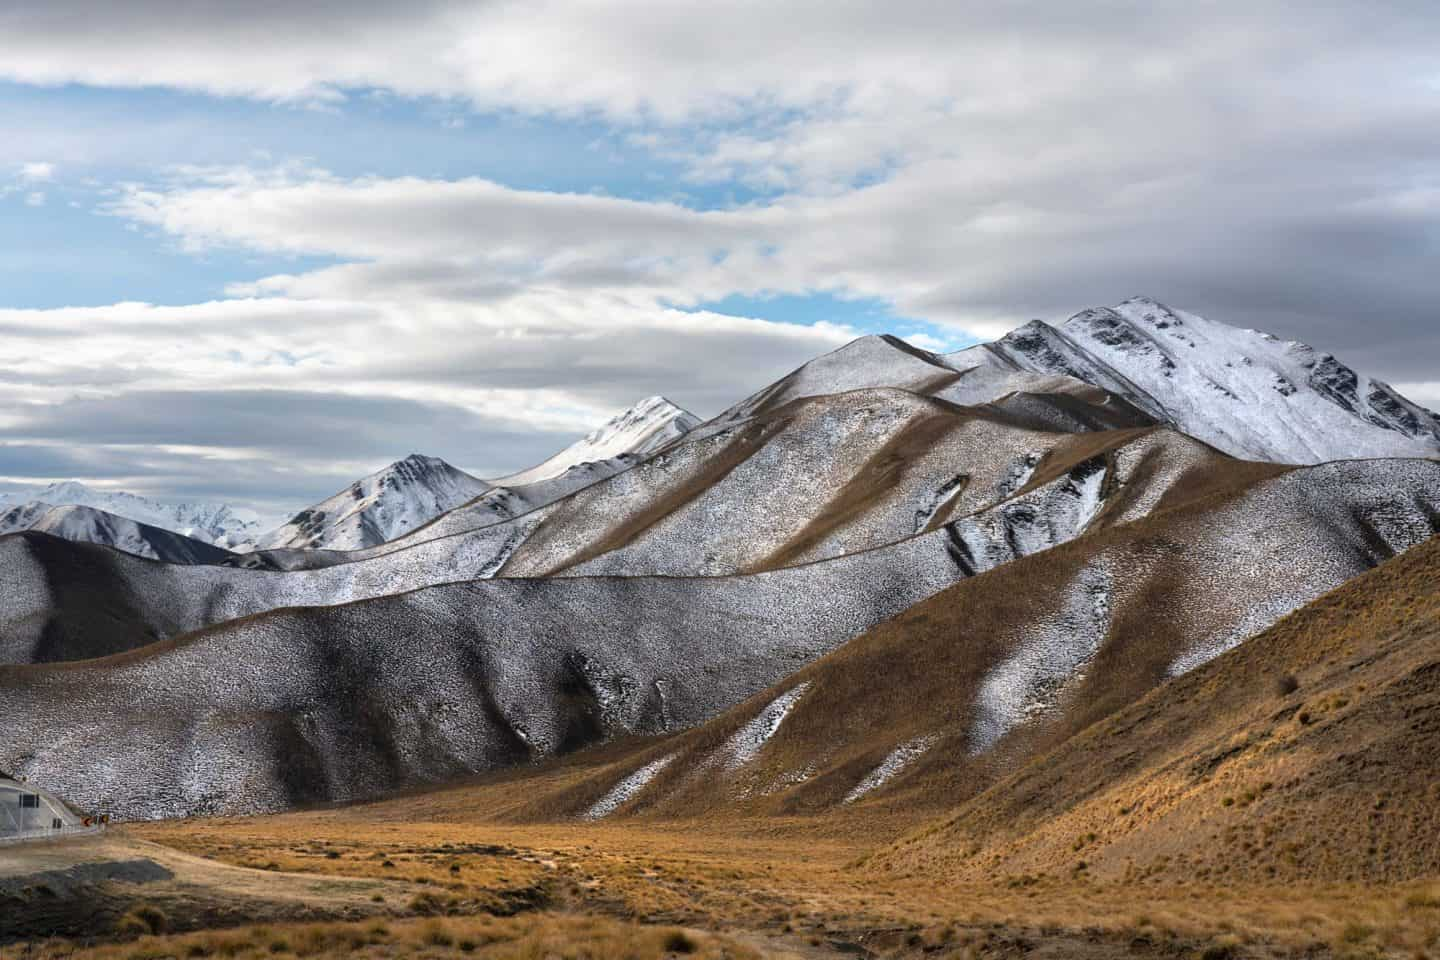 Cascading mountain ranges and fresh snow set the mood for some NZ landscape photography.